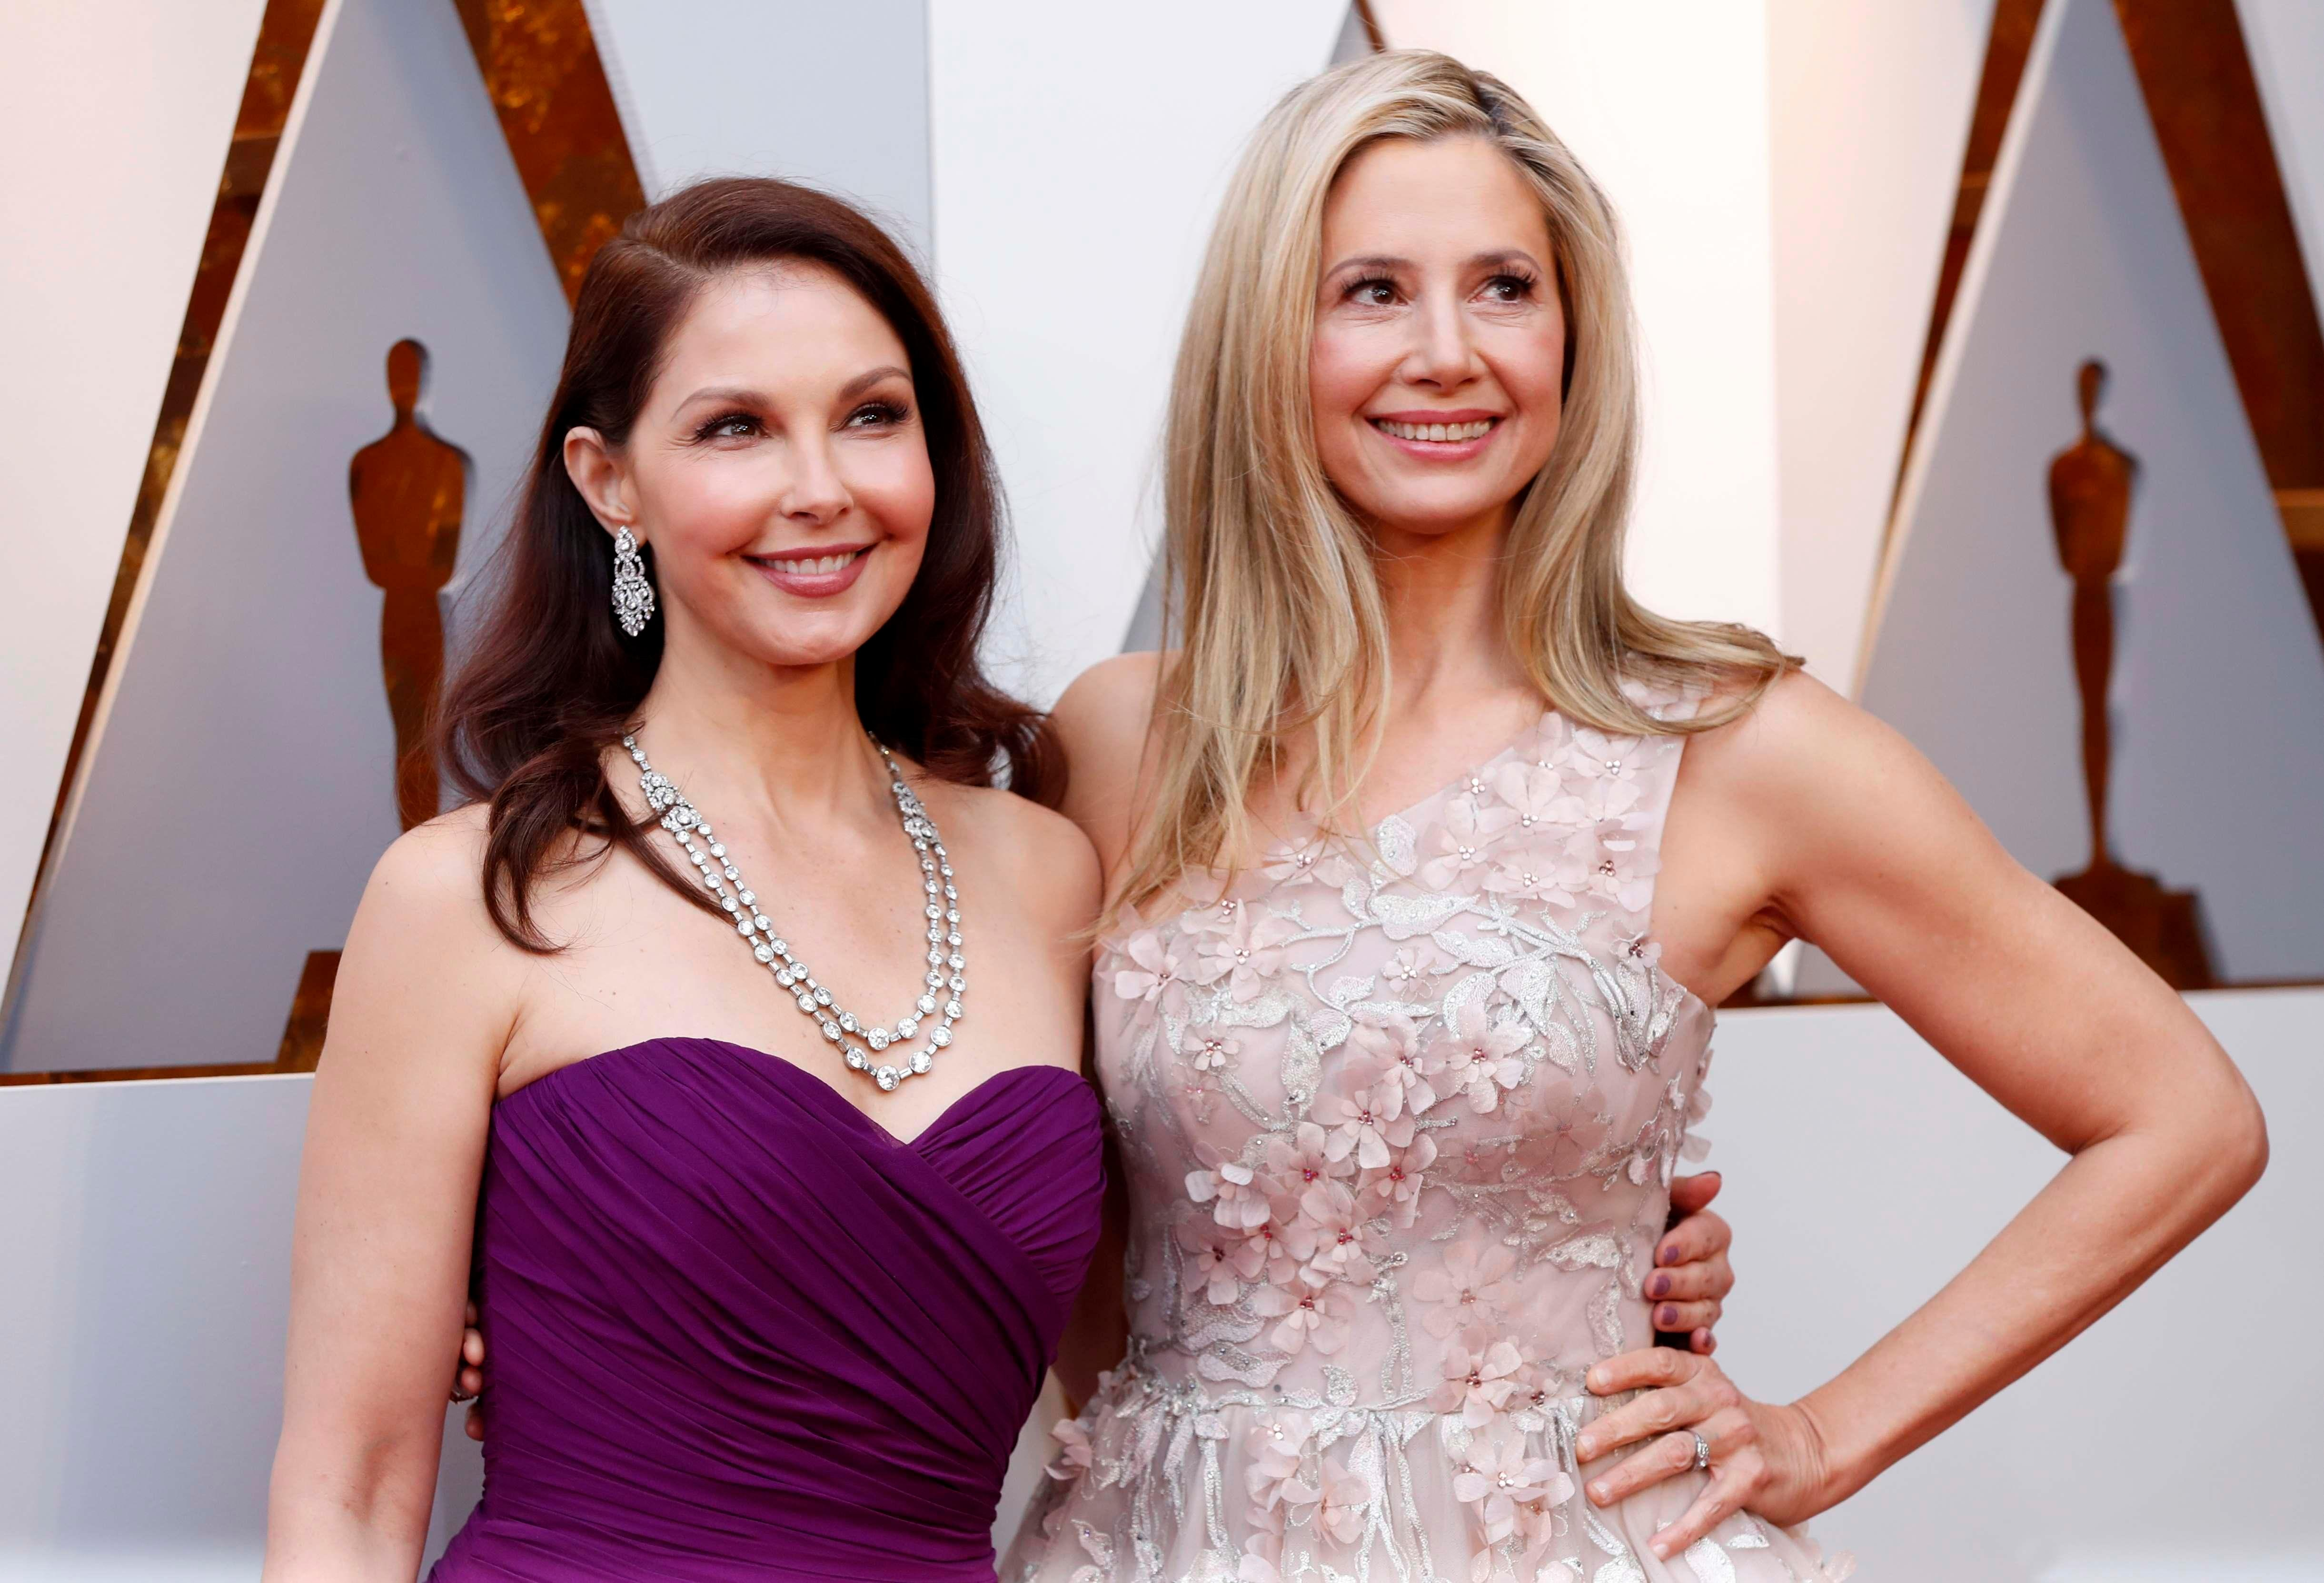 Harvey Weinstein accusers Ashley Judd and Mira Sorvino walk Oscars 2018 red carpet together